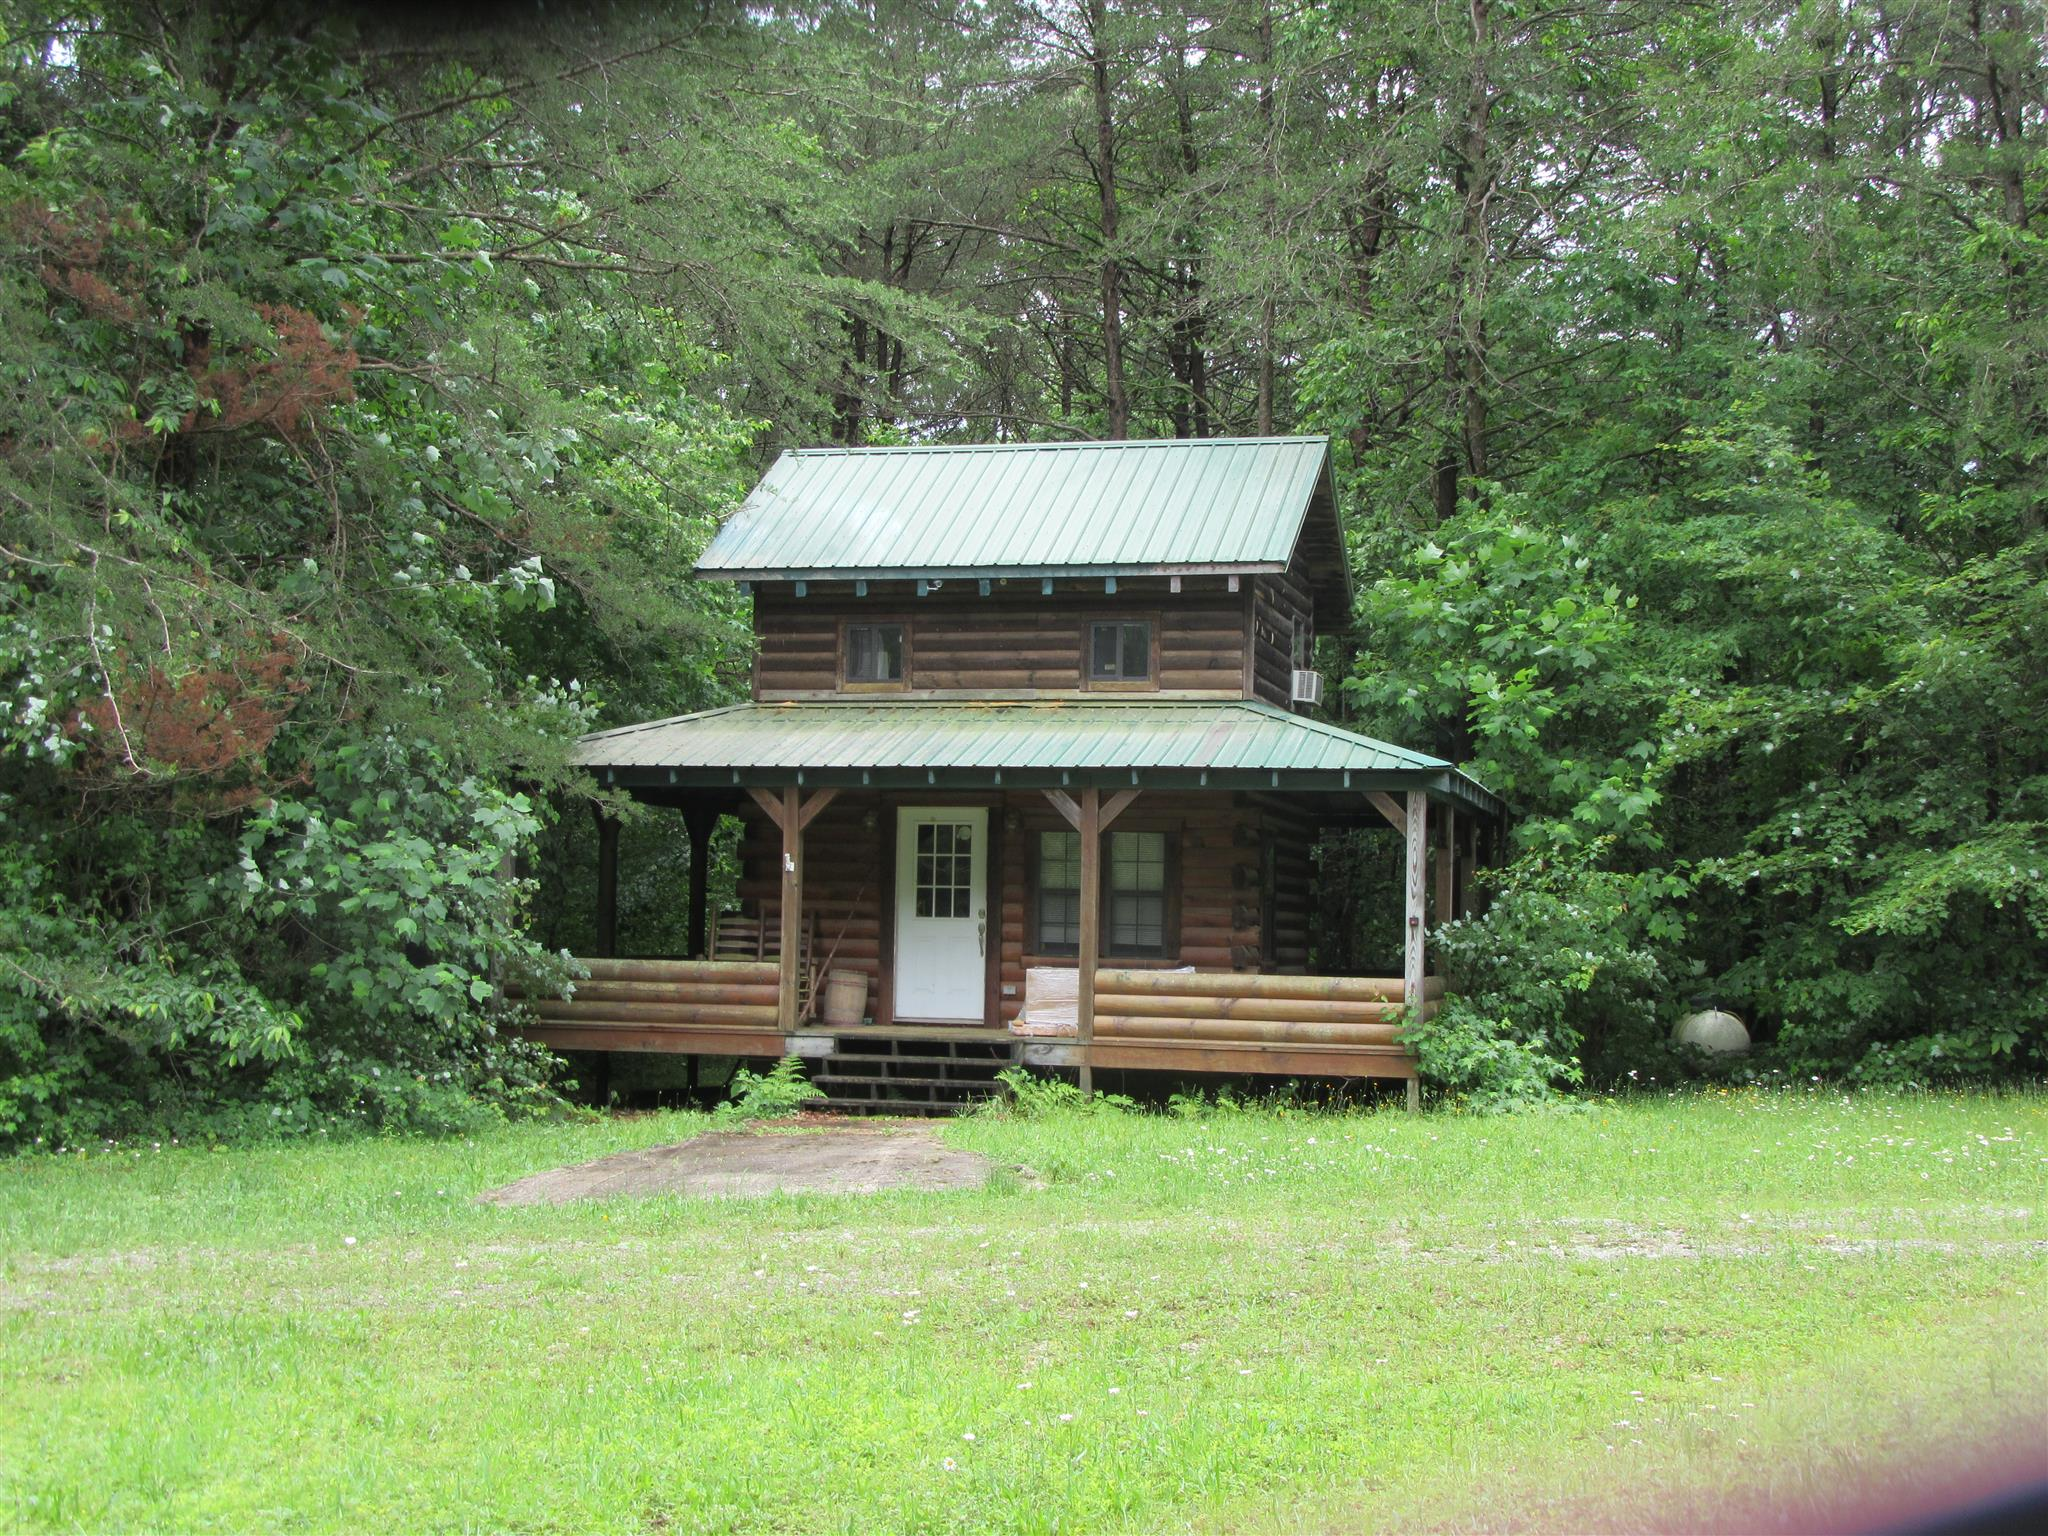 0 Indian Camp Ck Rd, Altamont, TN 37301 - Altamont, TN real estate listing